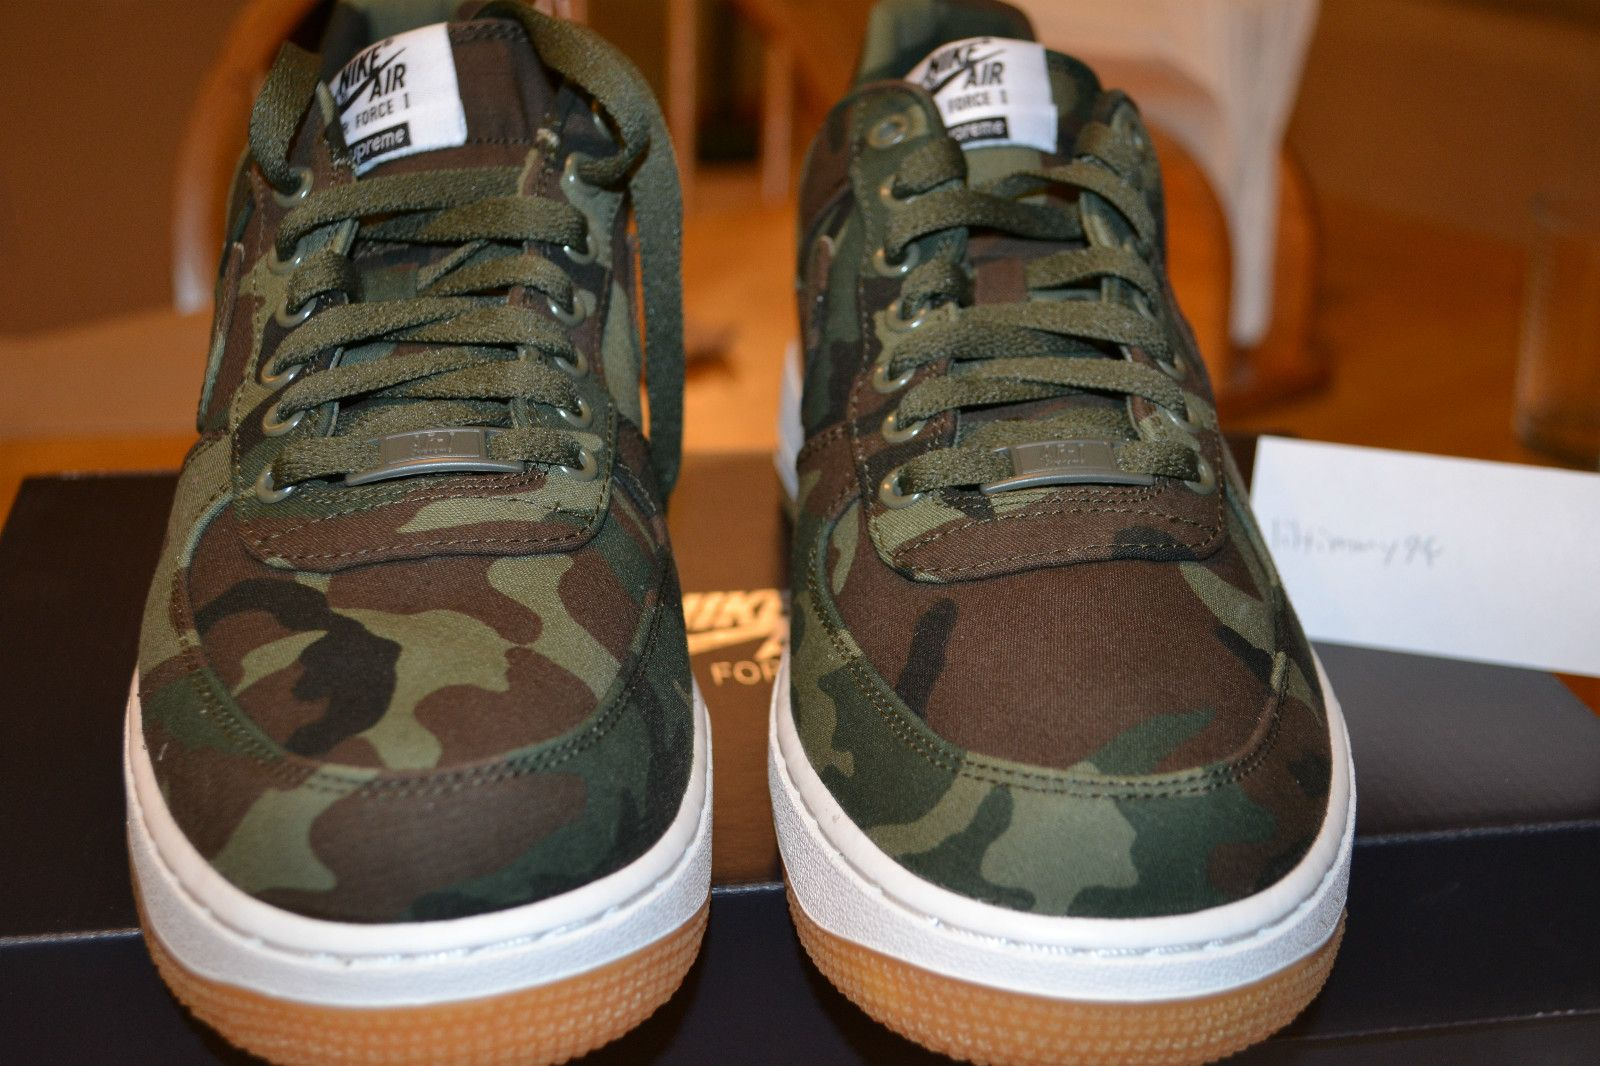 Supreme x Nike Air Force 1, Camo Colorway, Size 9 *Deadstock* #SNEAKERS